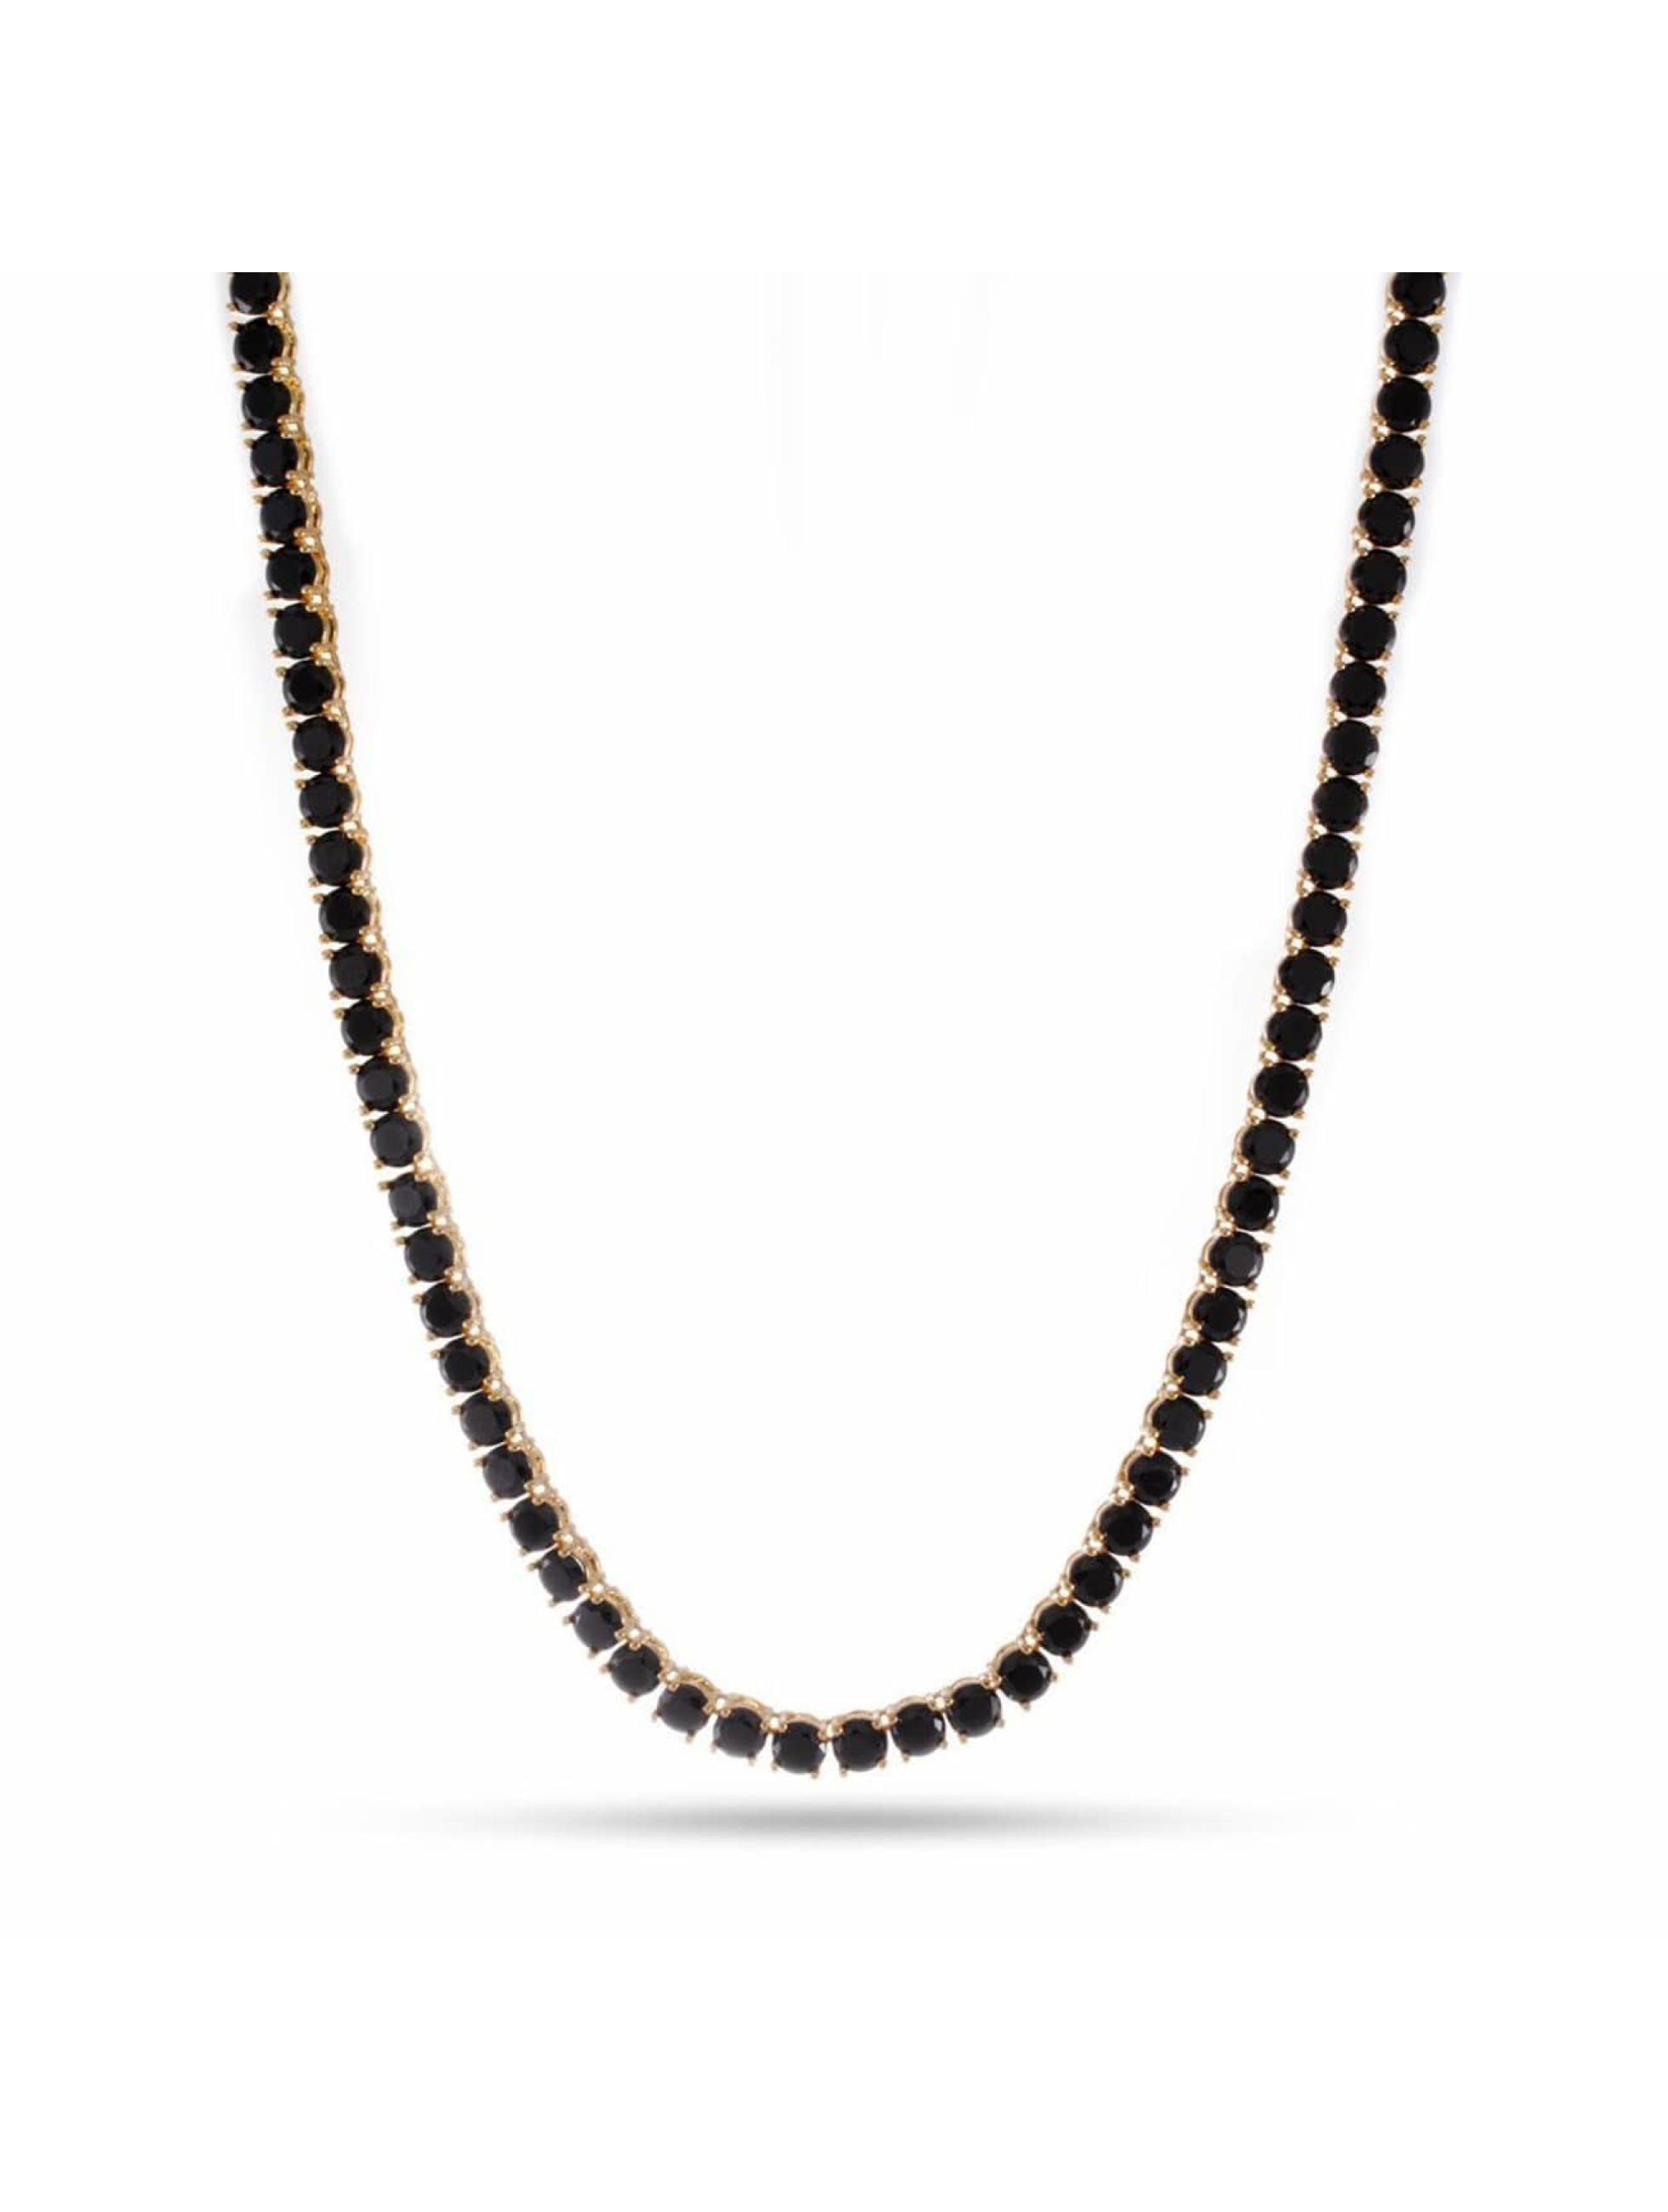 KING ICE Necklace Gold_Plated 5mm Single Row CZ Pharaoh gold colored